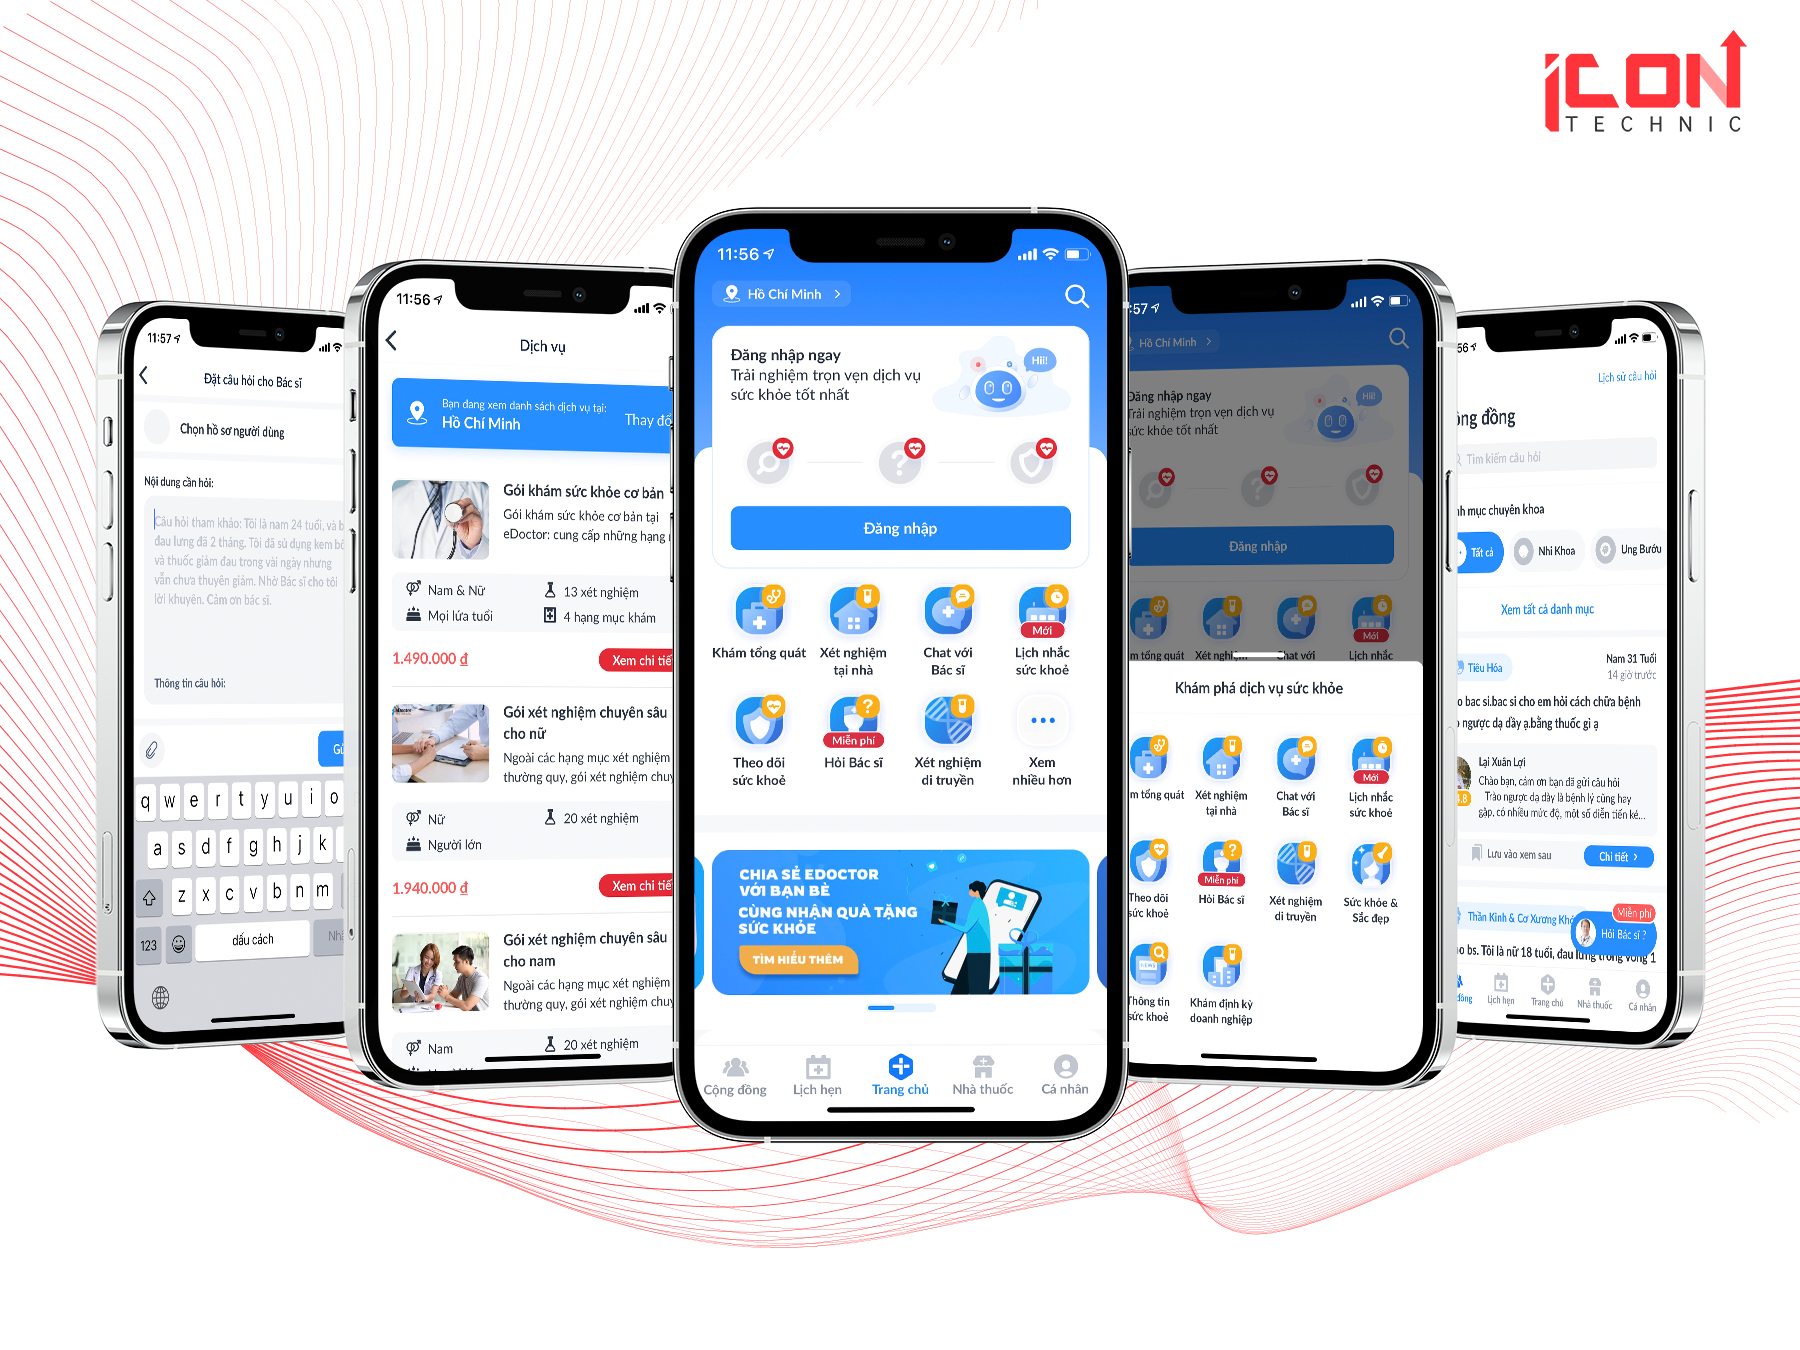 Thiết kế app Sức khoẻEdoctor - Icon Technic